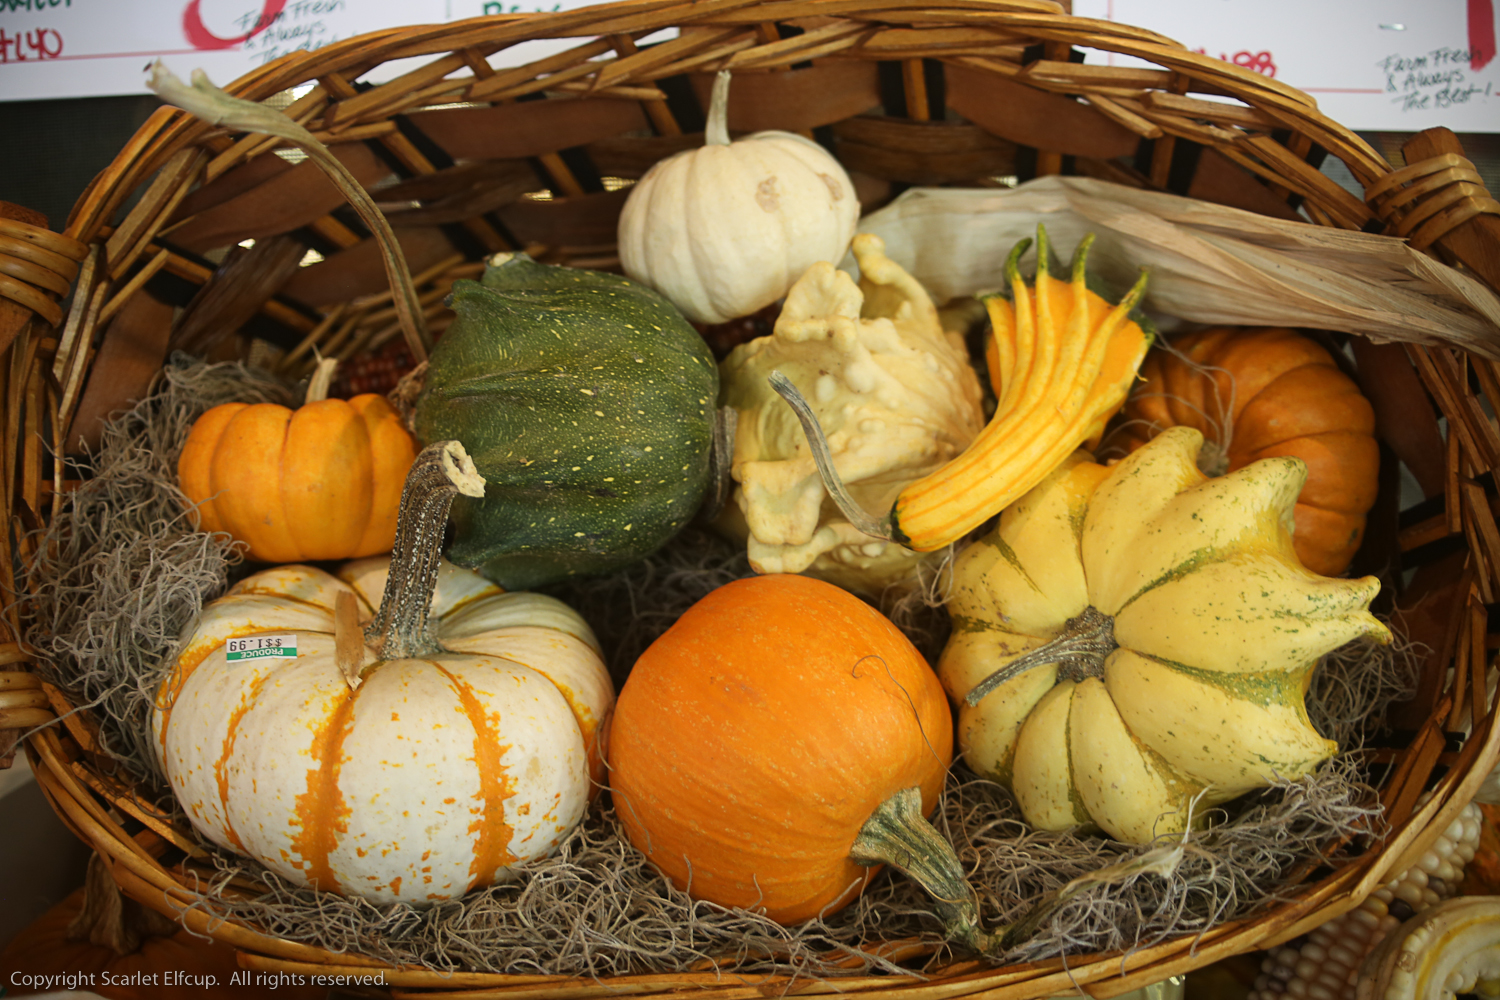 squash, pumpkins, gourds go up for sale at the market